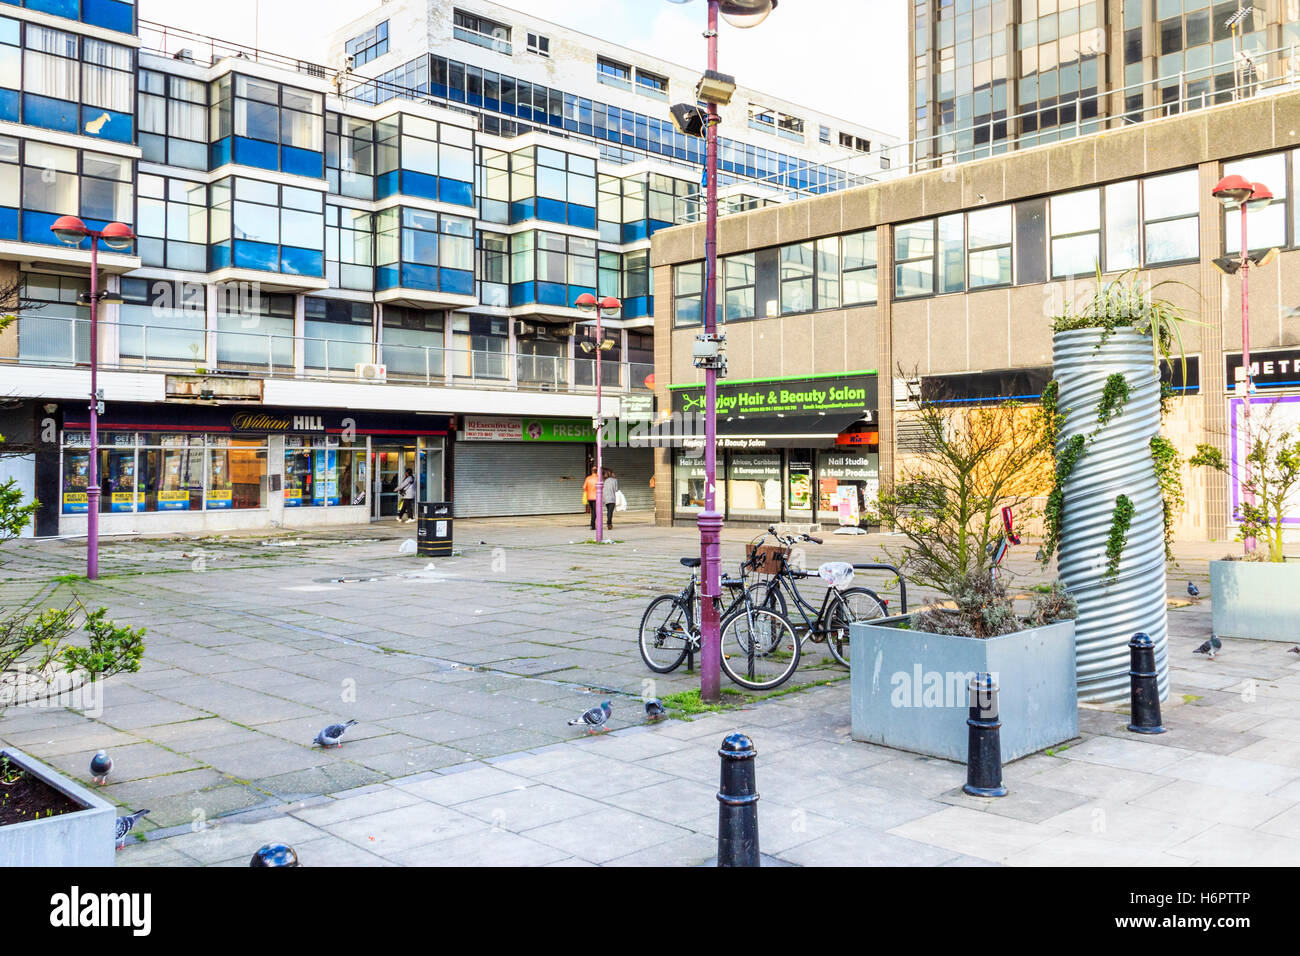 Hill House and Archway Mall before redevelopment, North London, UK - Stock Image